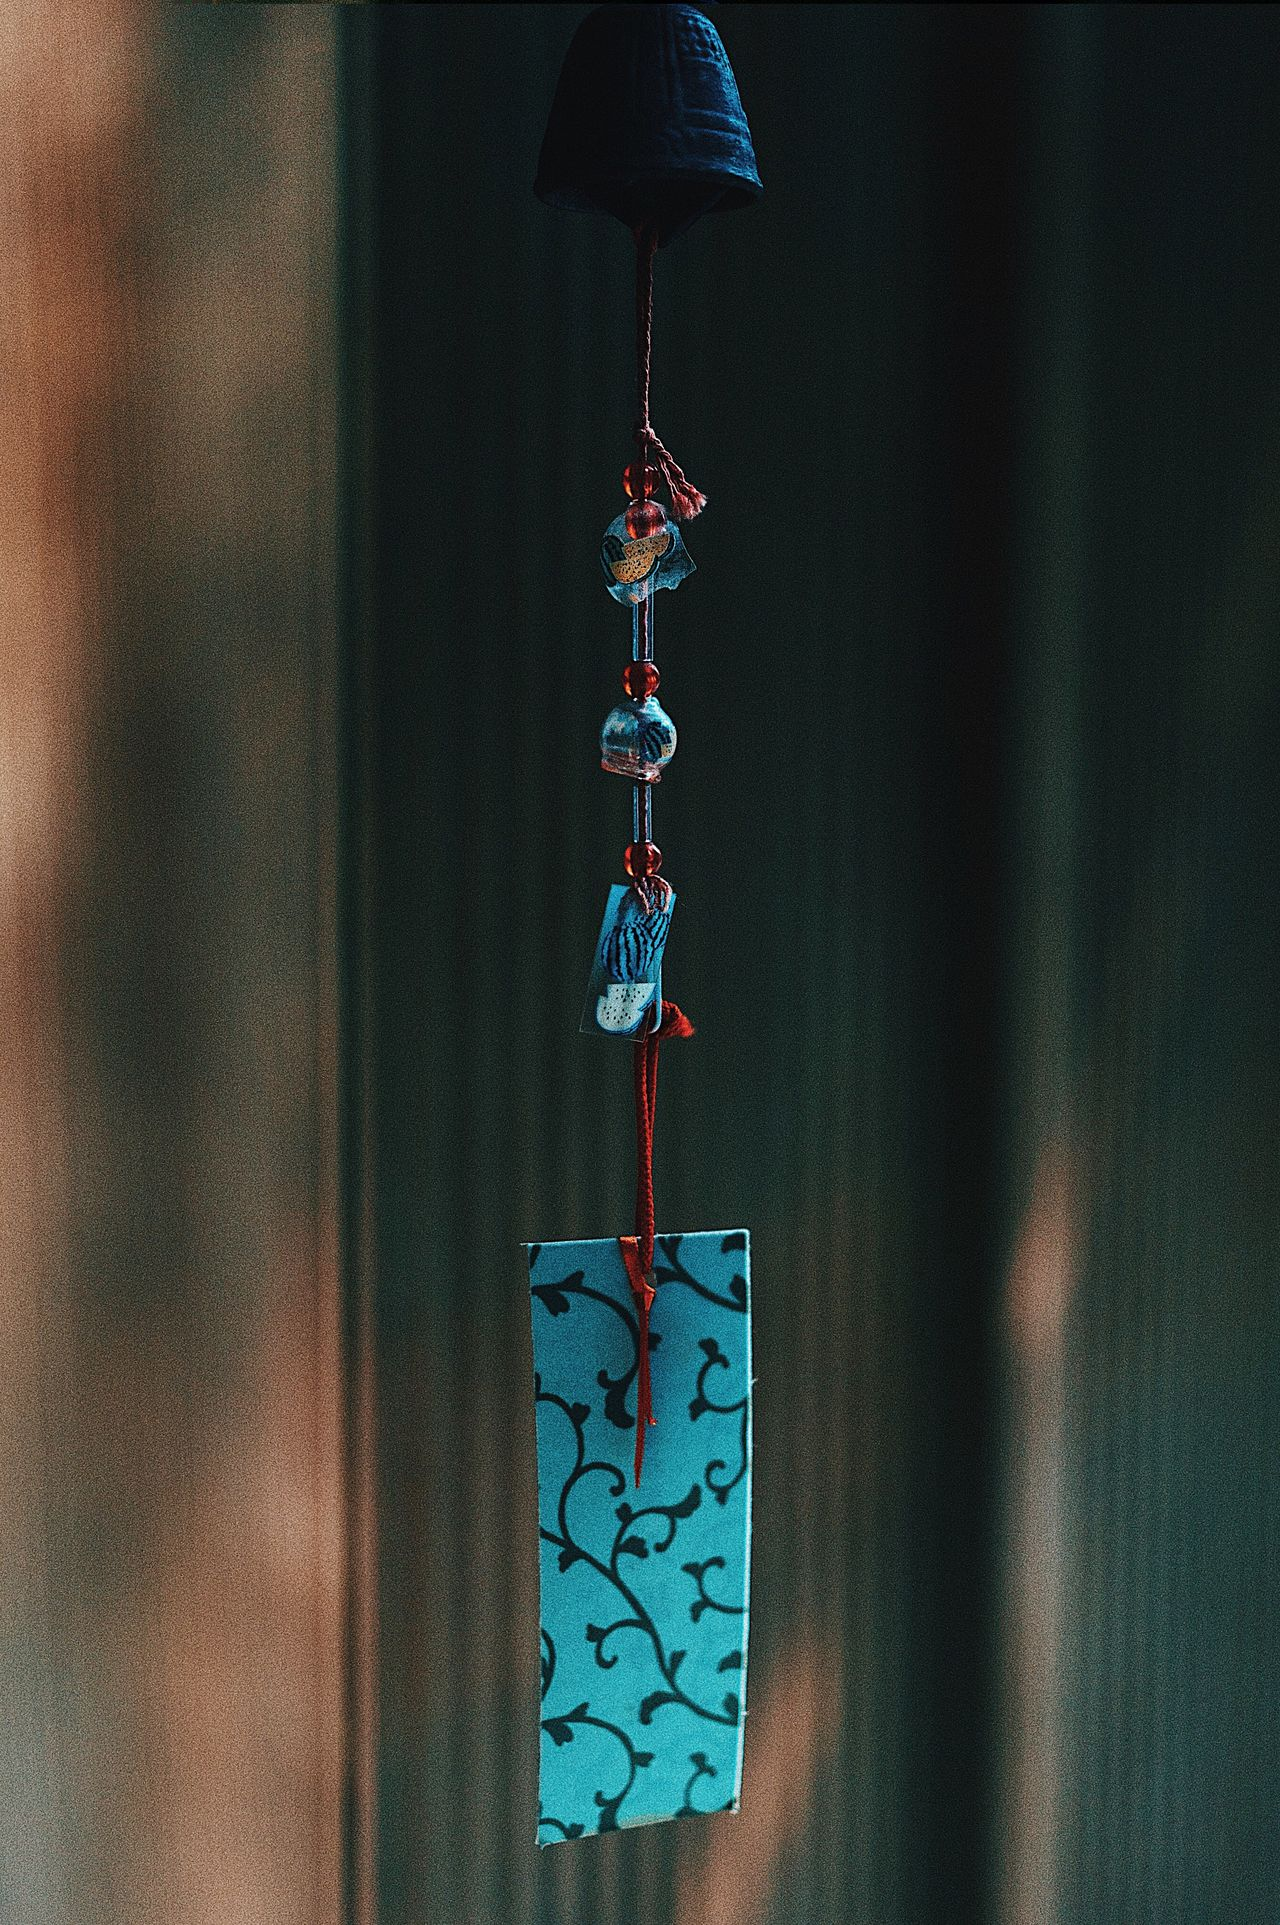 Wind Chime Japanese Culture Kyoto, Japan Cultures Kyoto, Japan 2017